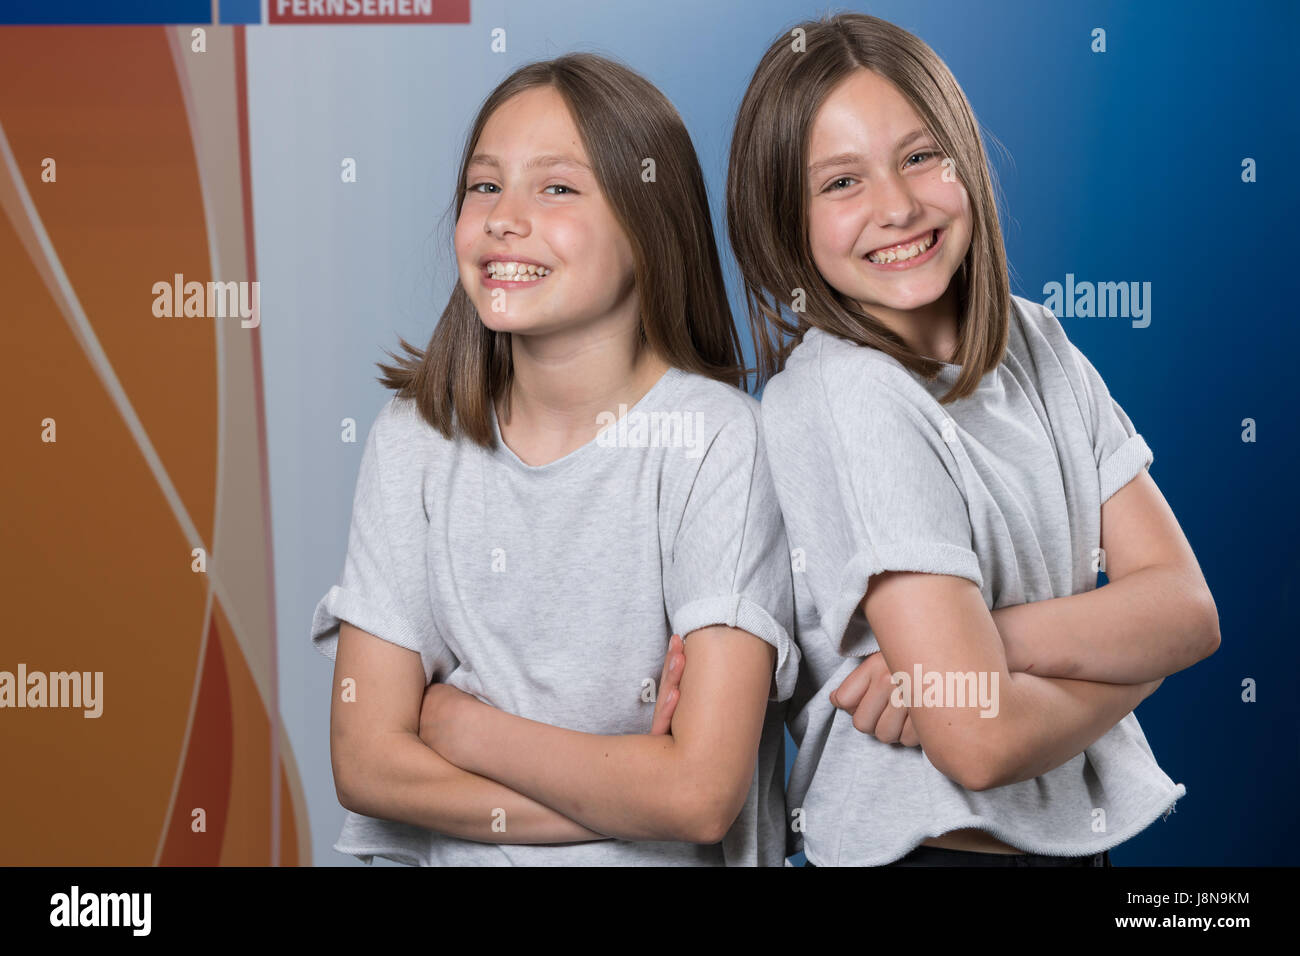 Leipzig, Germany  19th May, 2017  Child actresses from the